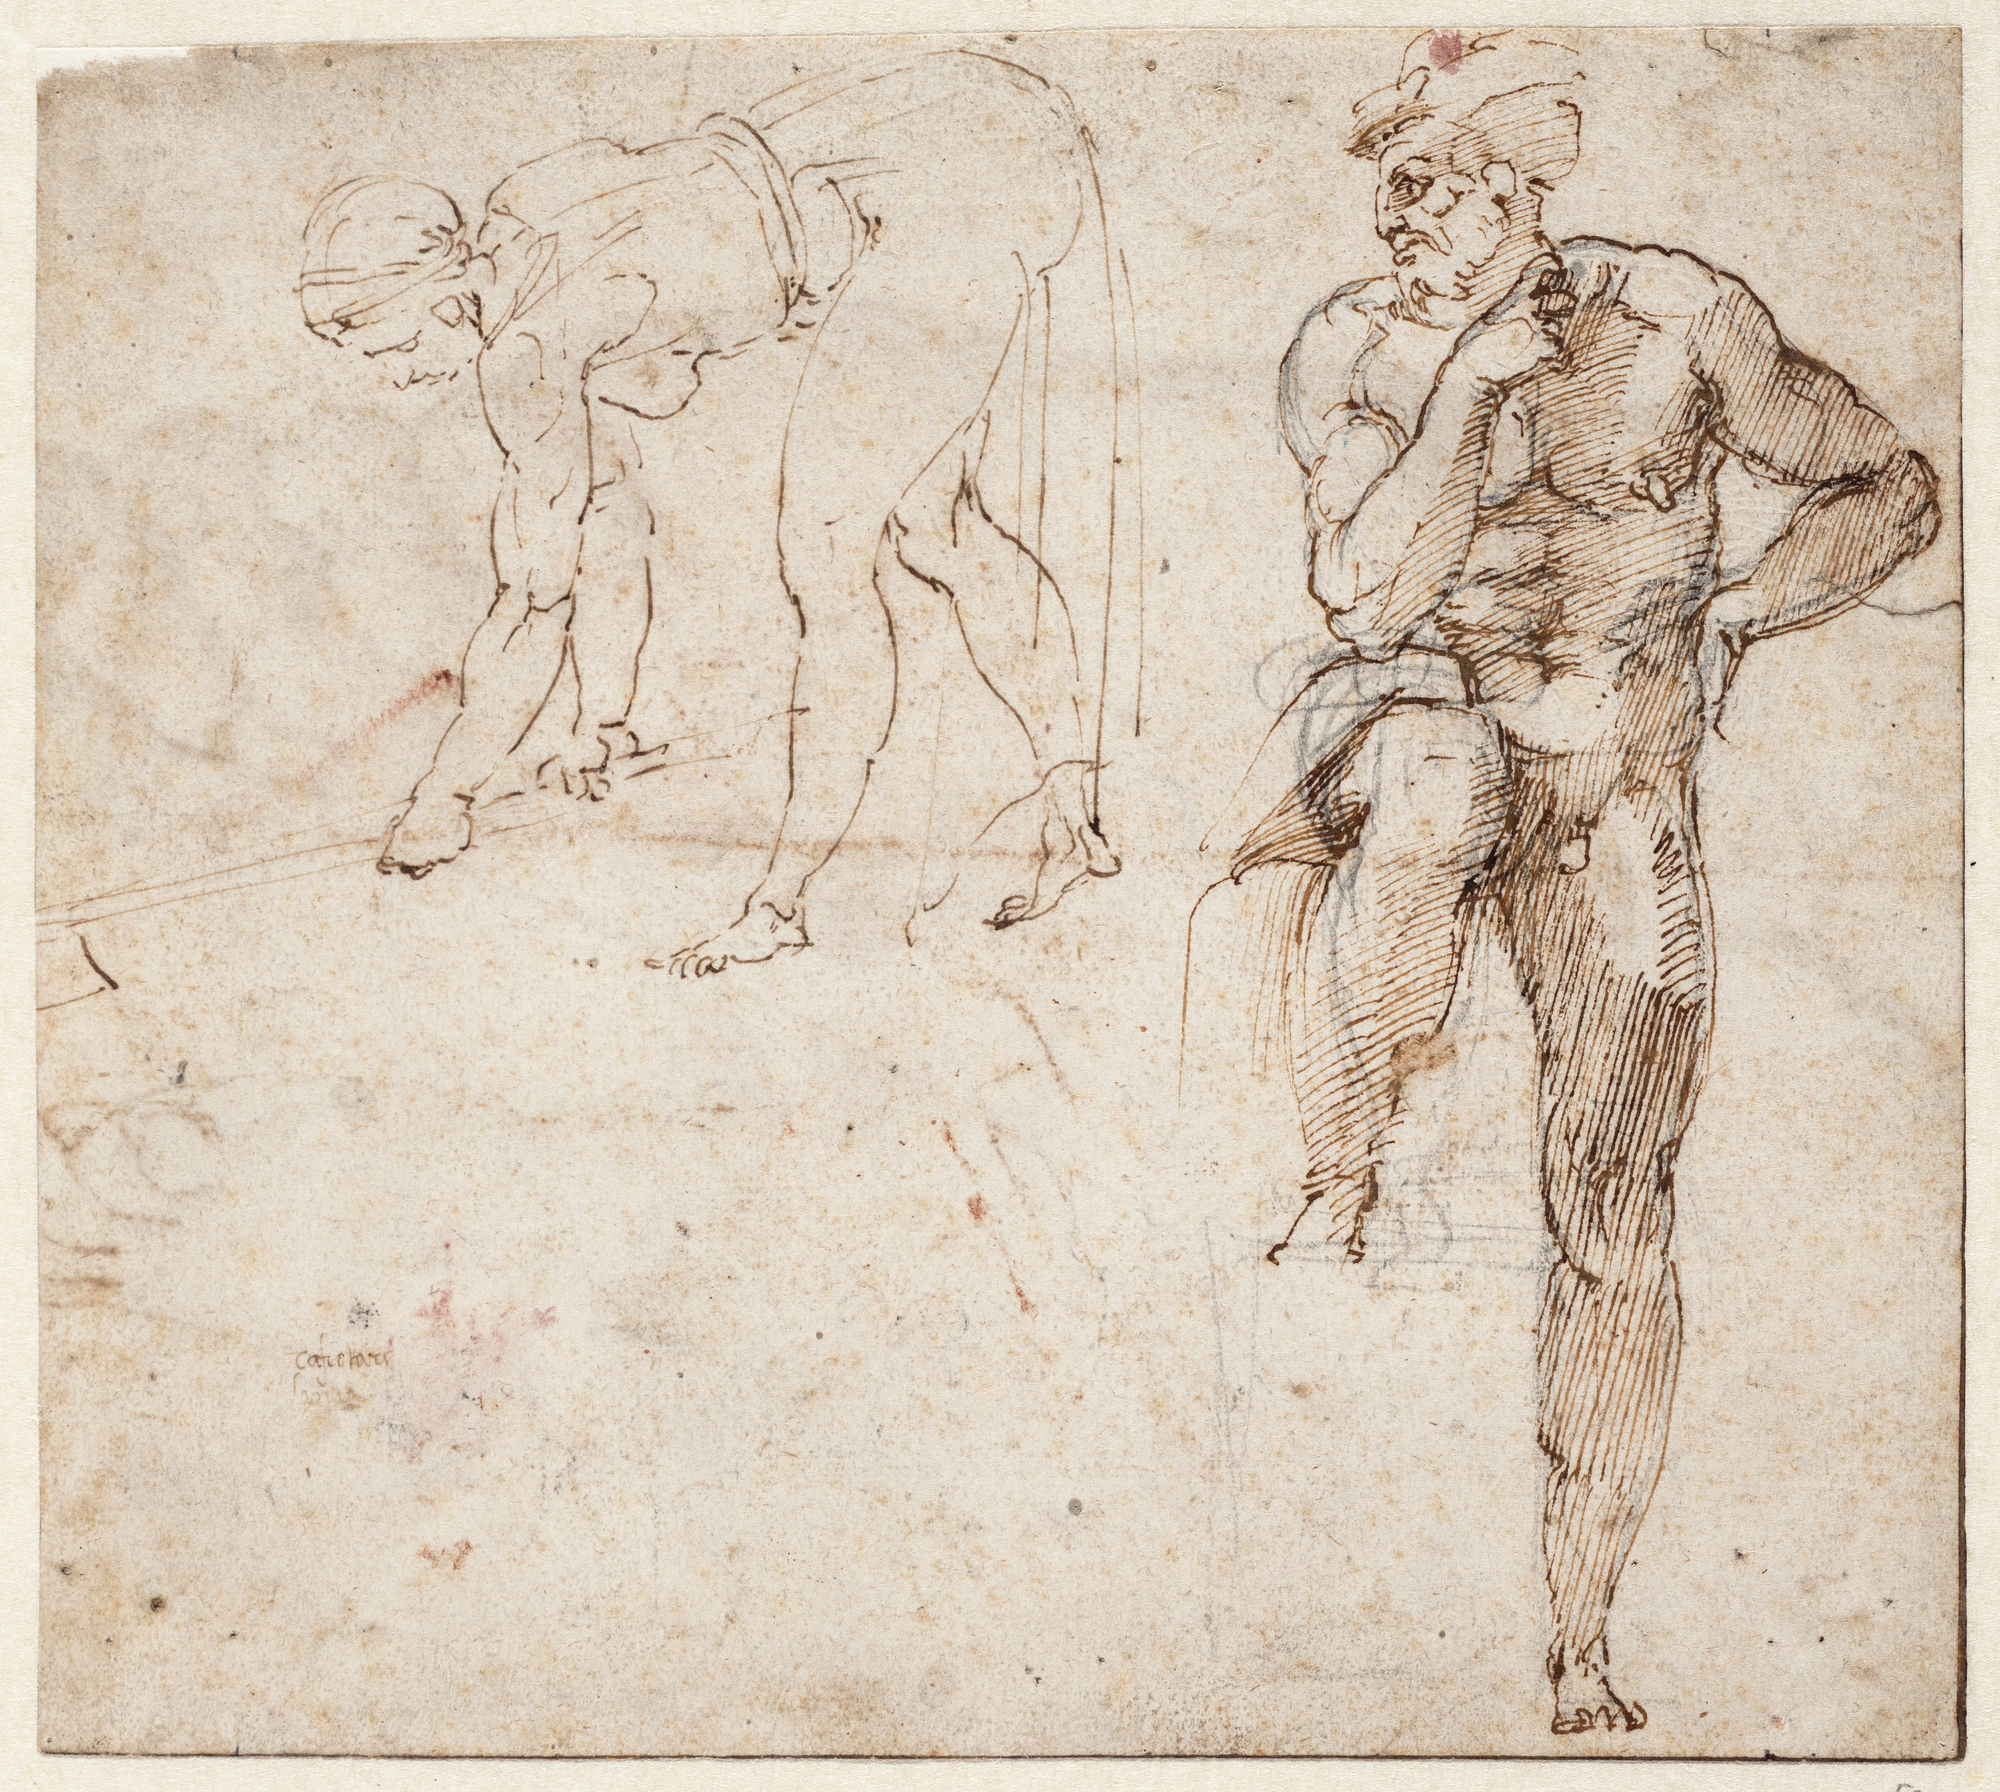 drawing and sketching of two figures